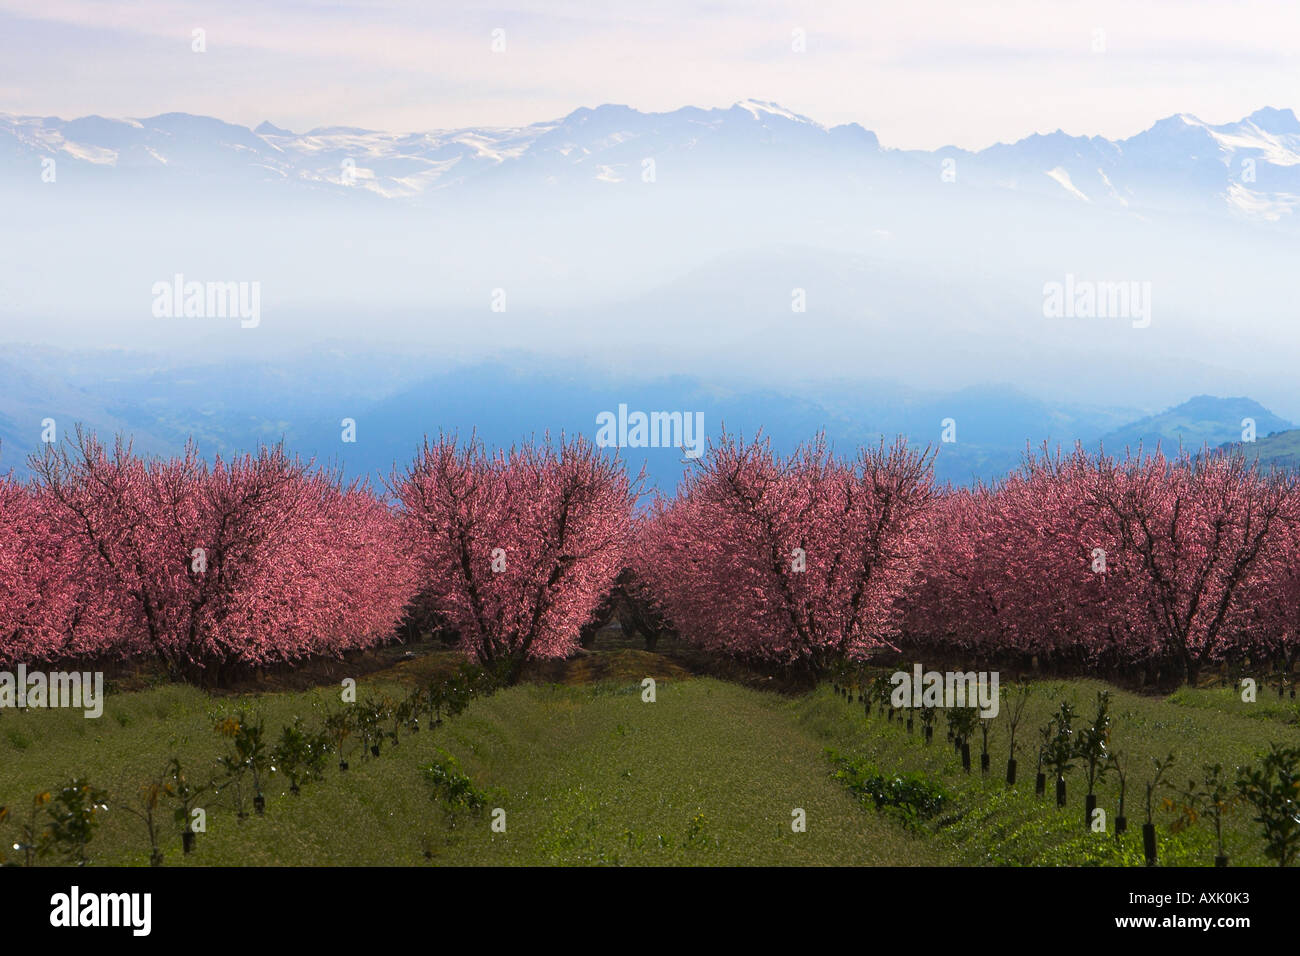 rows growing plants cherry blossom trees branches flowers buds season sky blue pink green montains snow haze - Stock Image